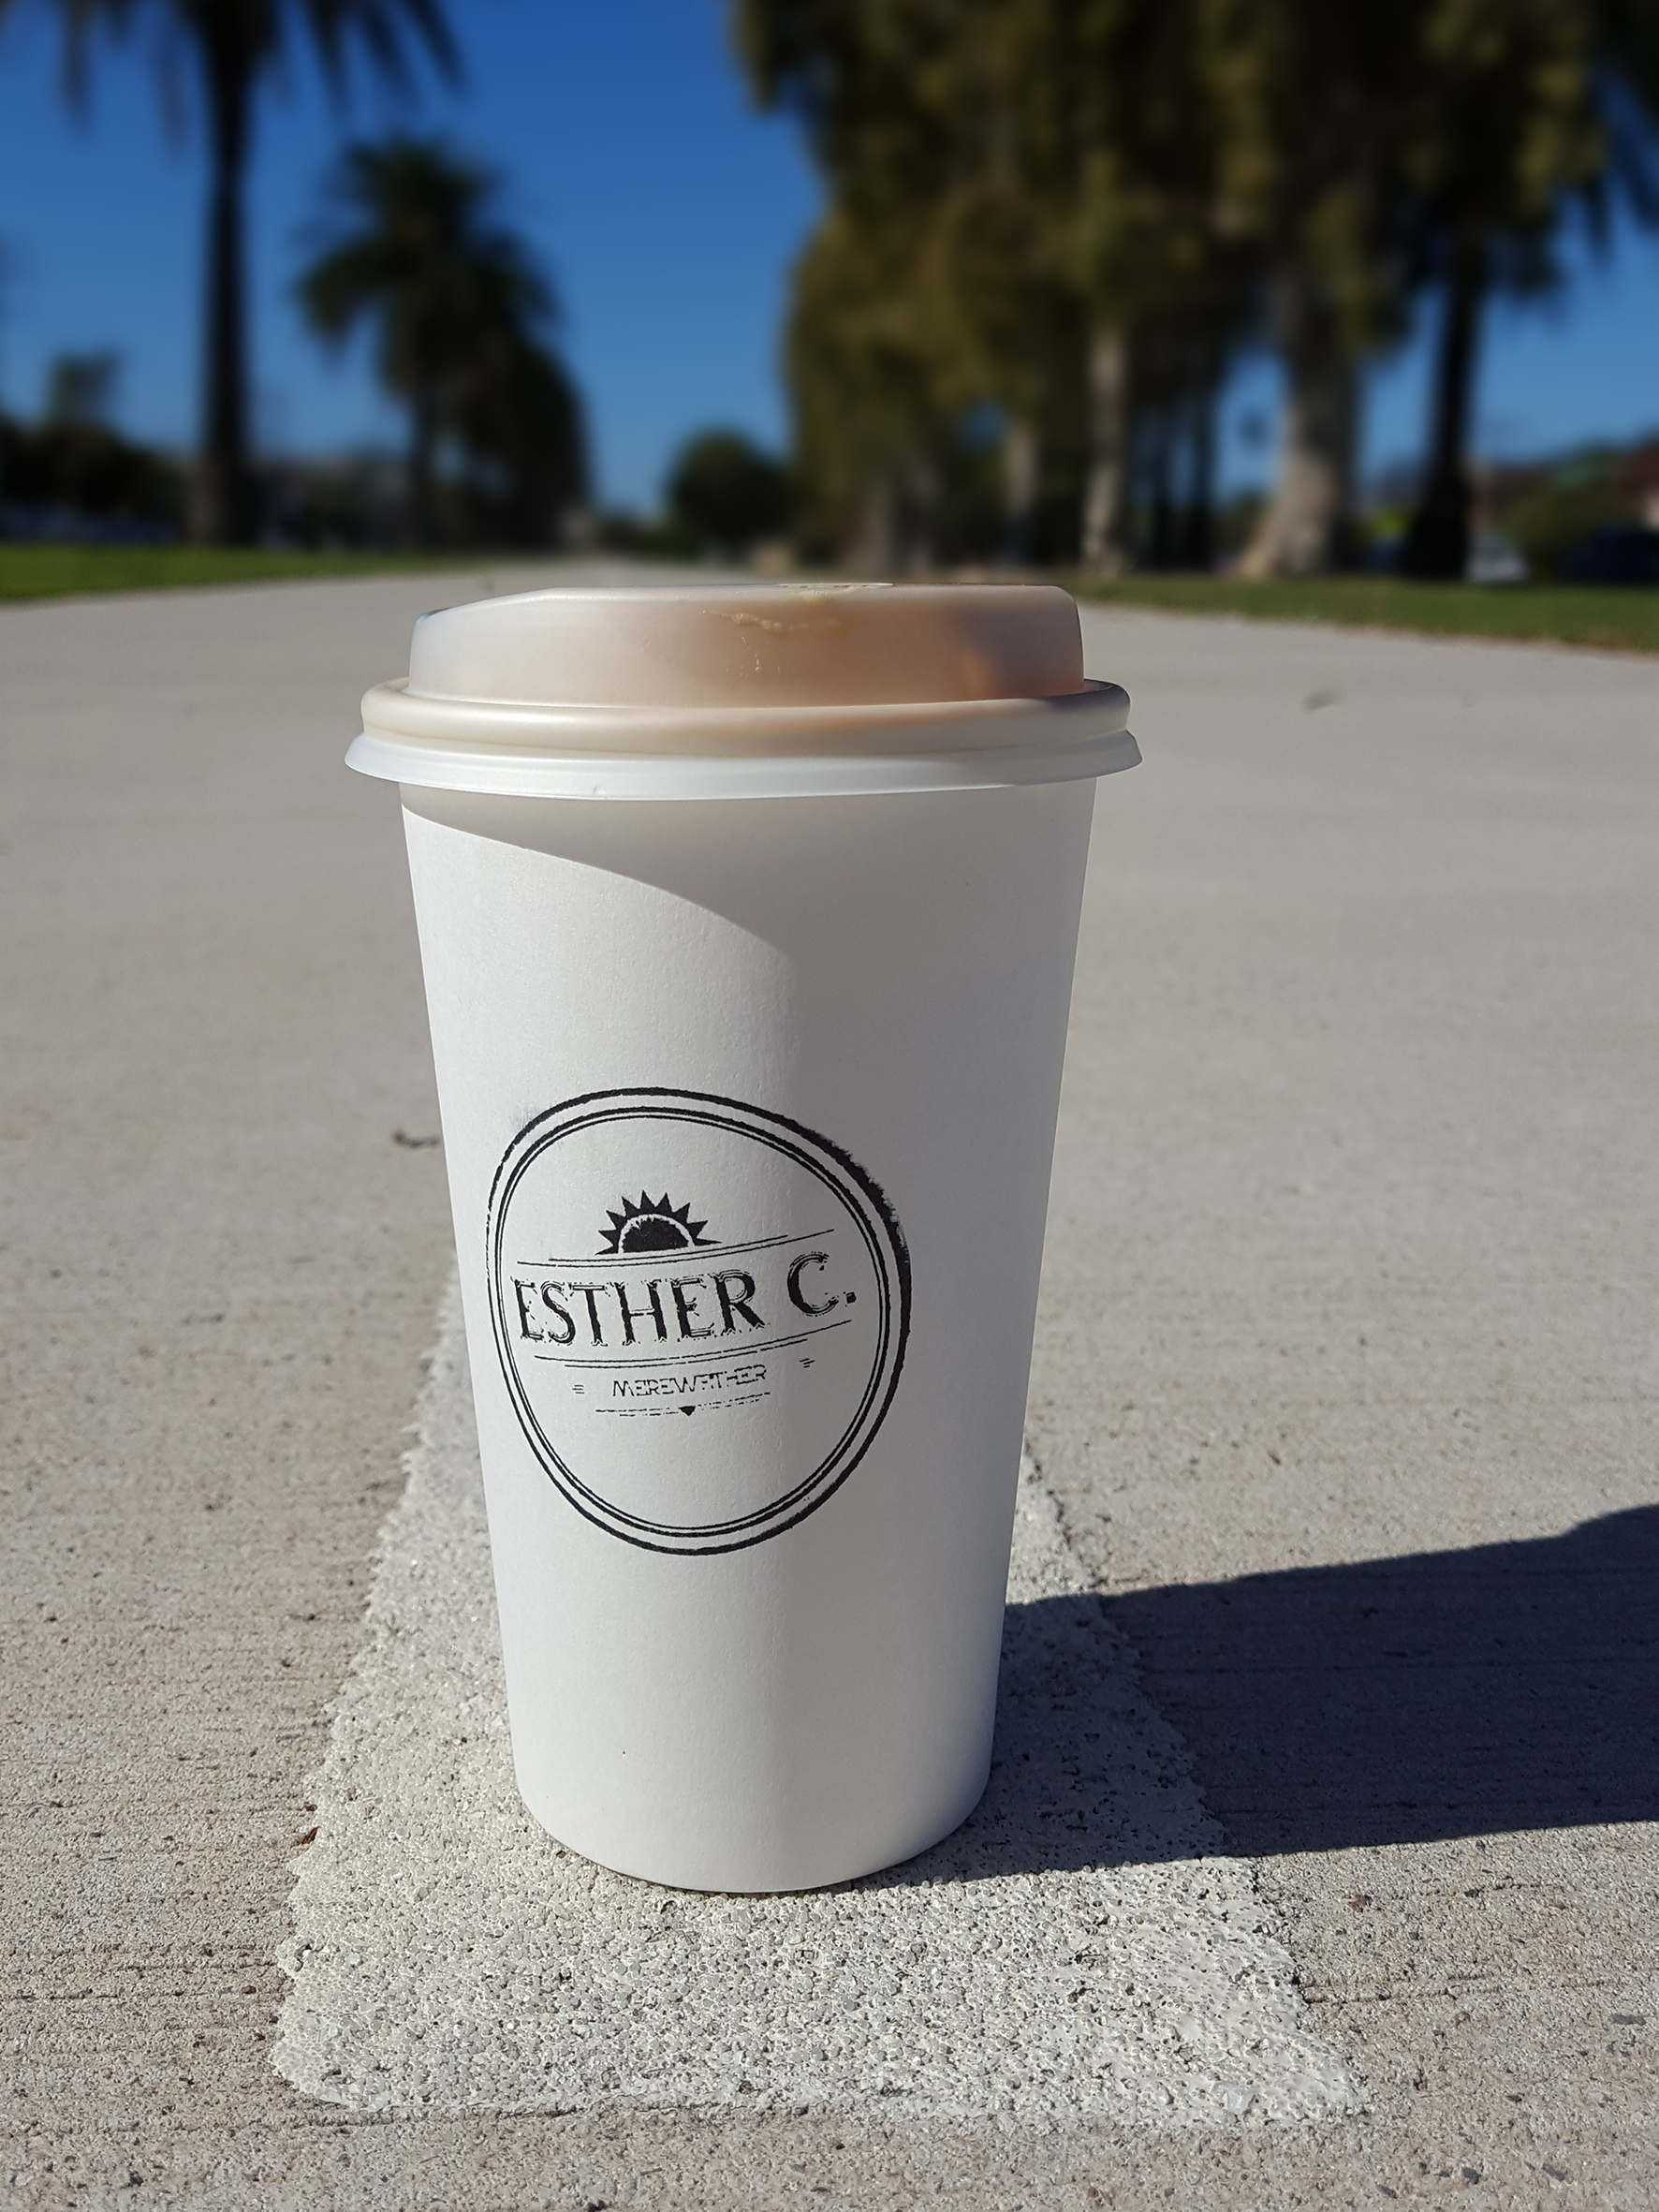 Esther C takeaway cup